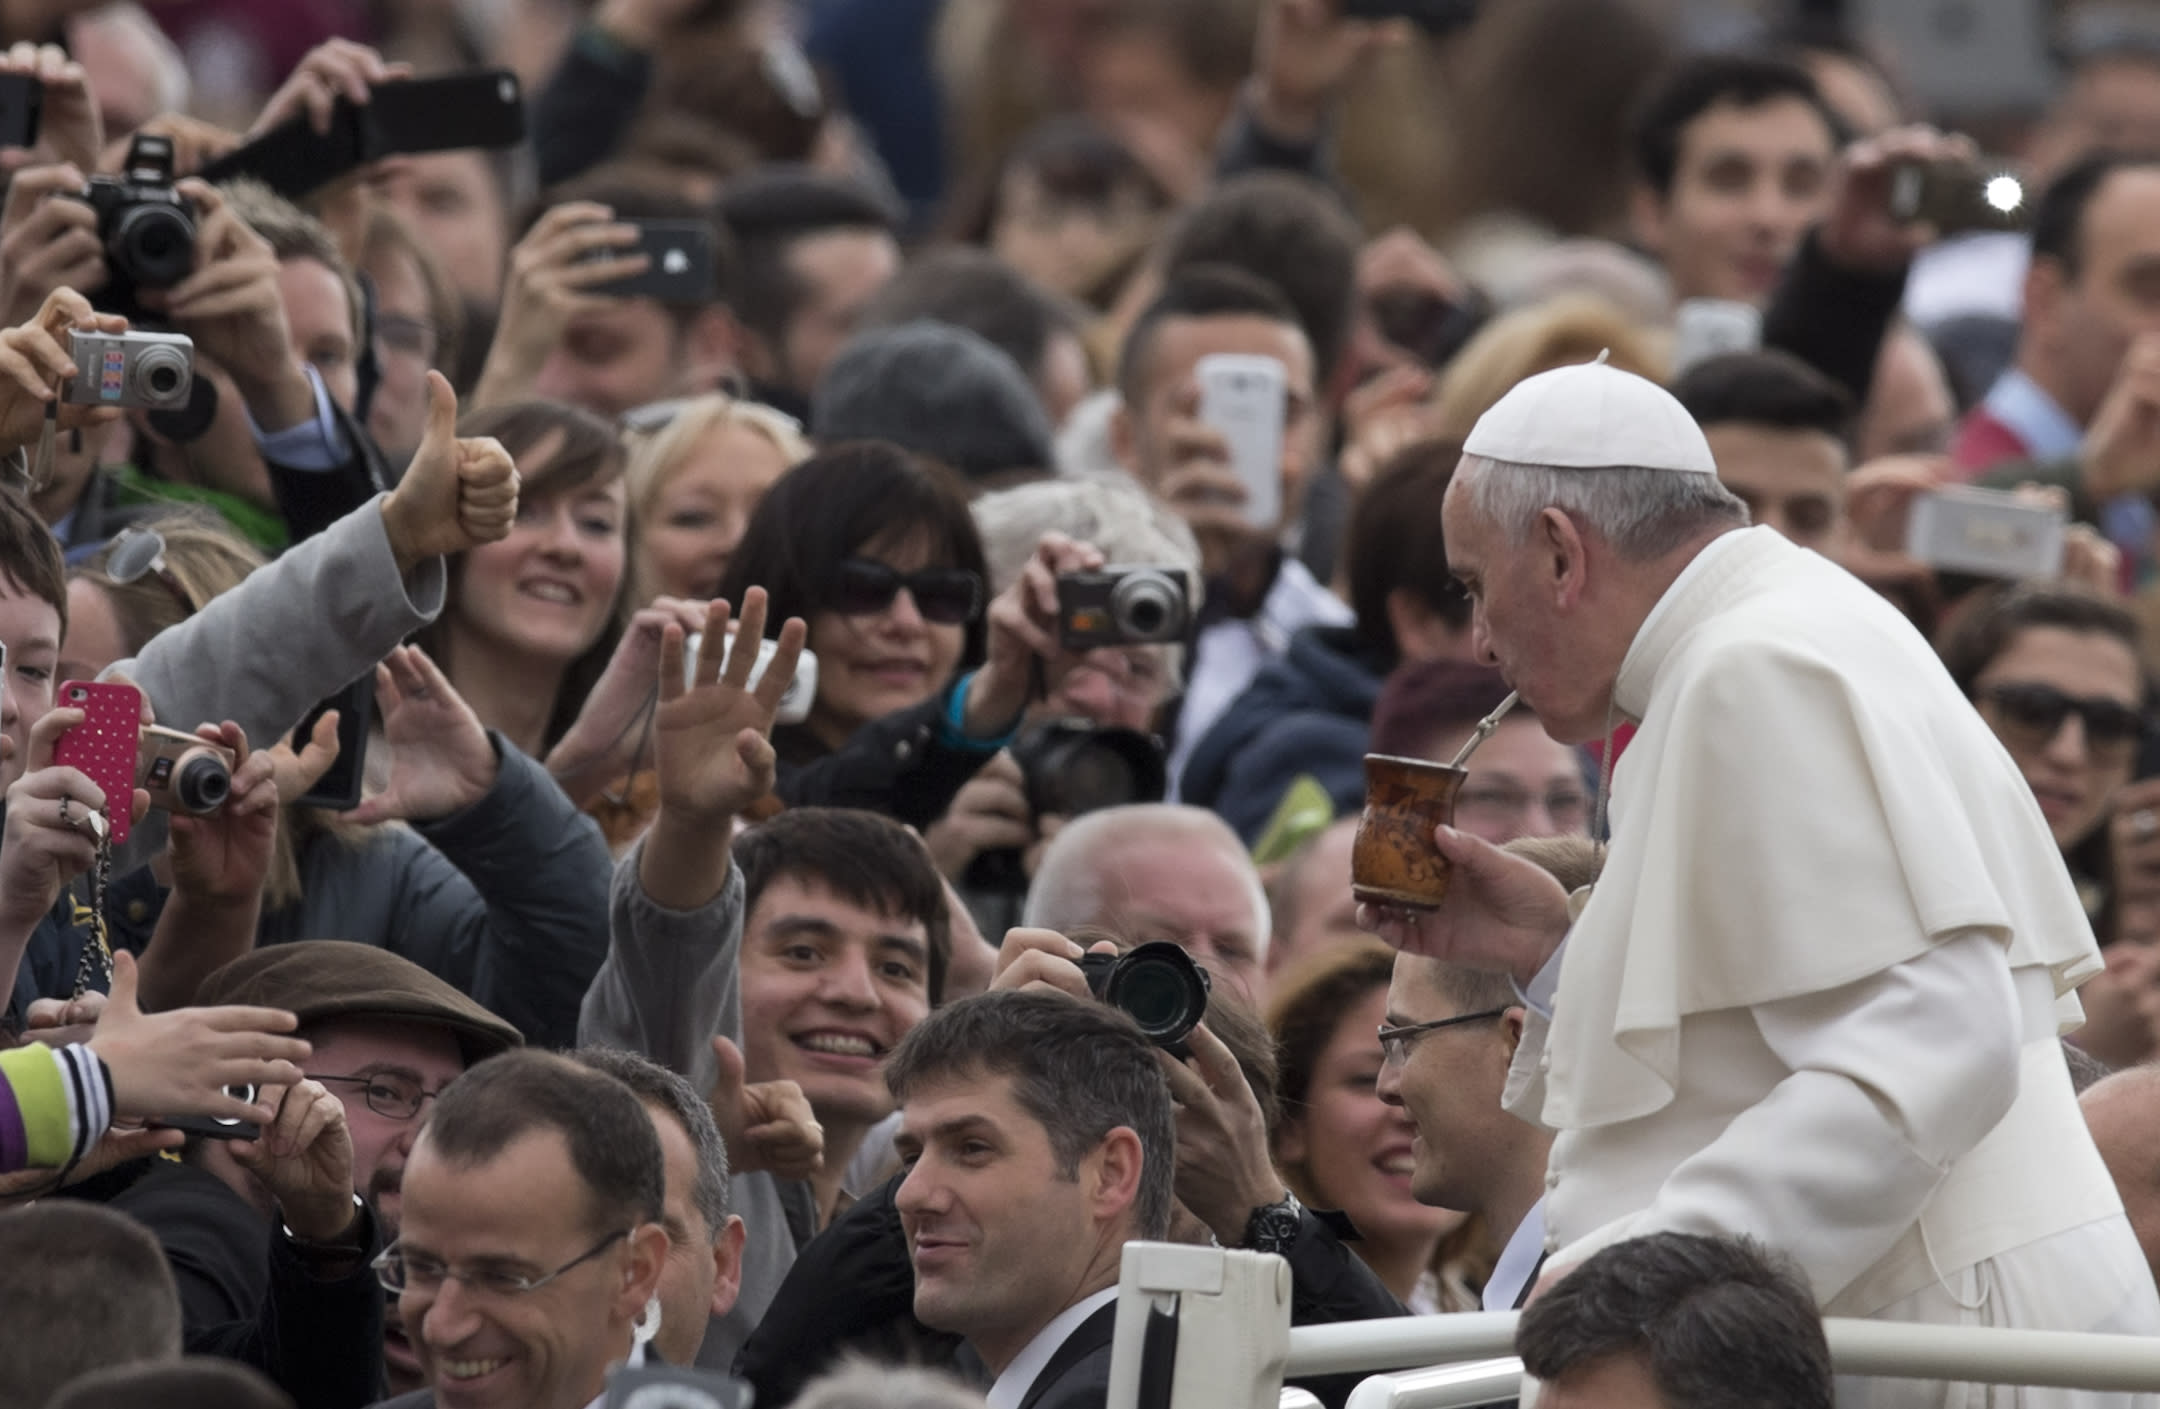 Pope Francis Pope drinks from a mate gourd, a traditional South American cup, we was offered as he is driven through the crowd in St. Peter's Square at the Vatican, prior to his general audience, Wednesday, Feb. 19, 2014. At public appearances, people offer Pope Francis gifts, and personal belongings to be blessed. (AP Photo/Alessandra Tarantino)